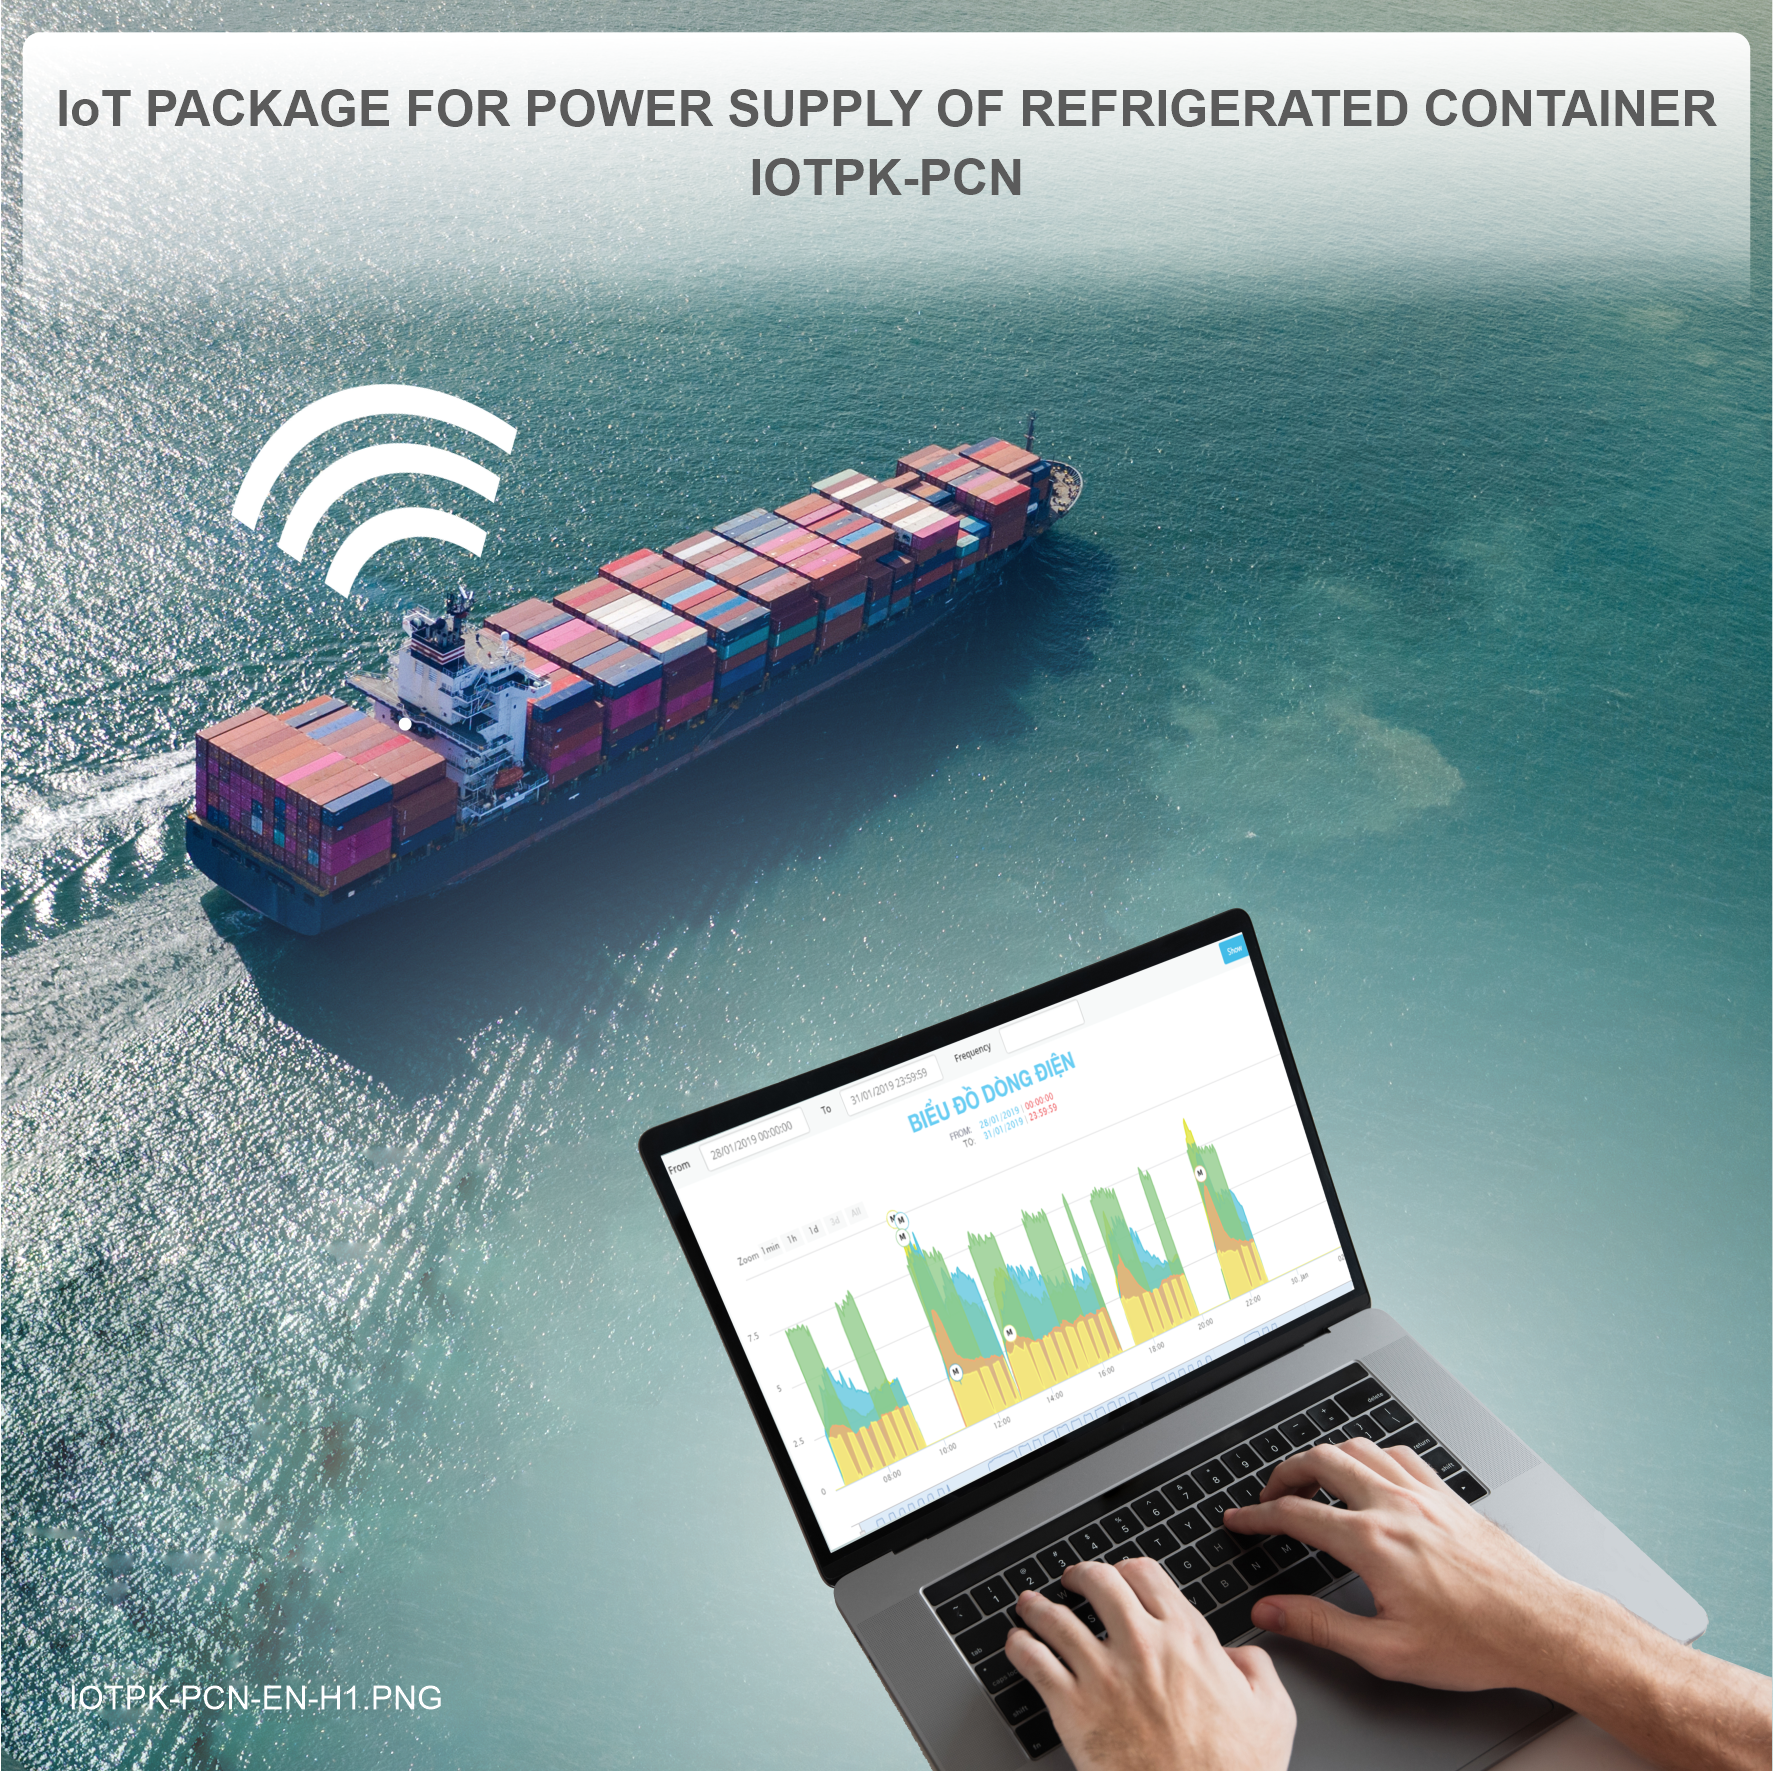 IoT SOLUTION PACKAGE FOR REFRIGERATED CONTAINER